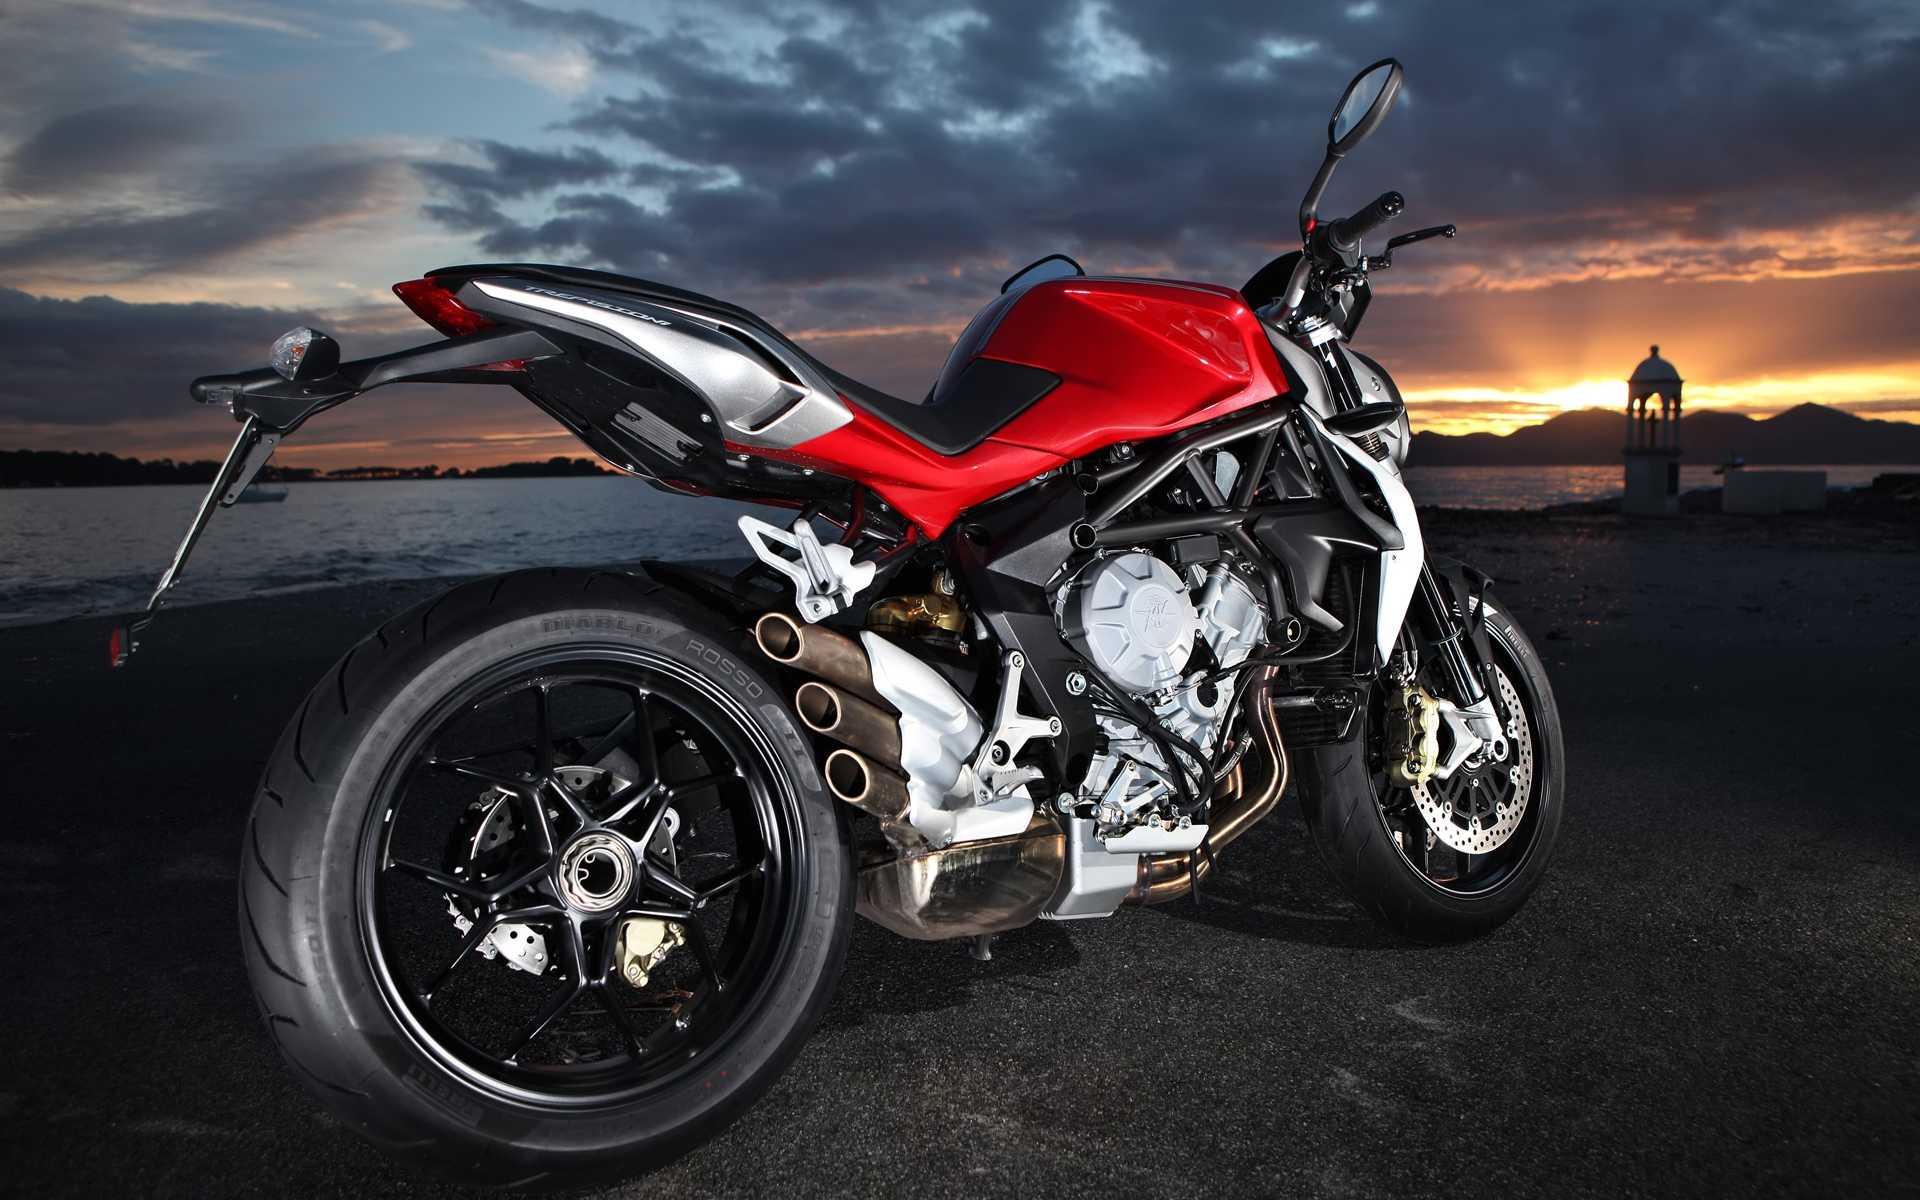 MV Agusta Brutale HD Wallpaper